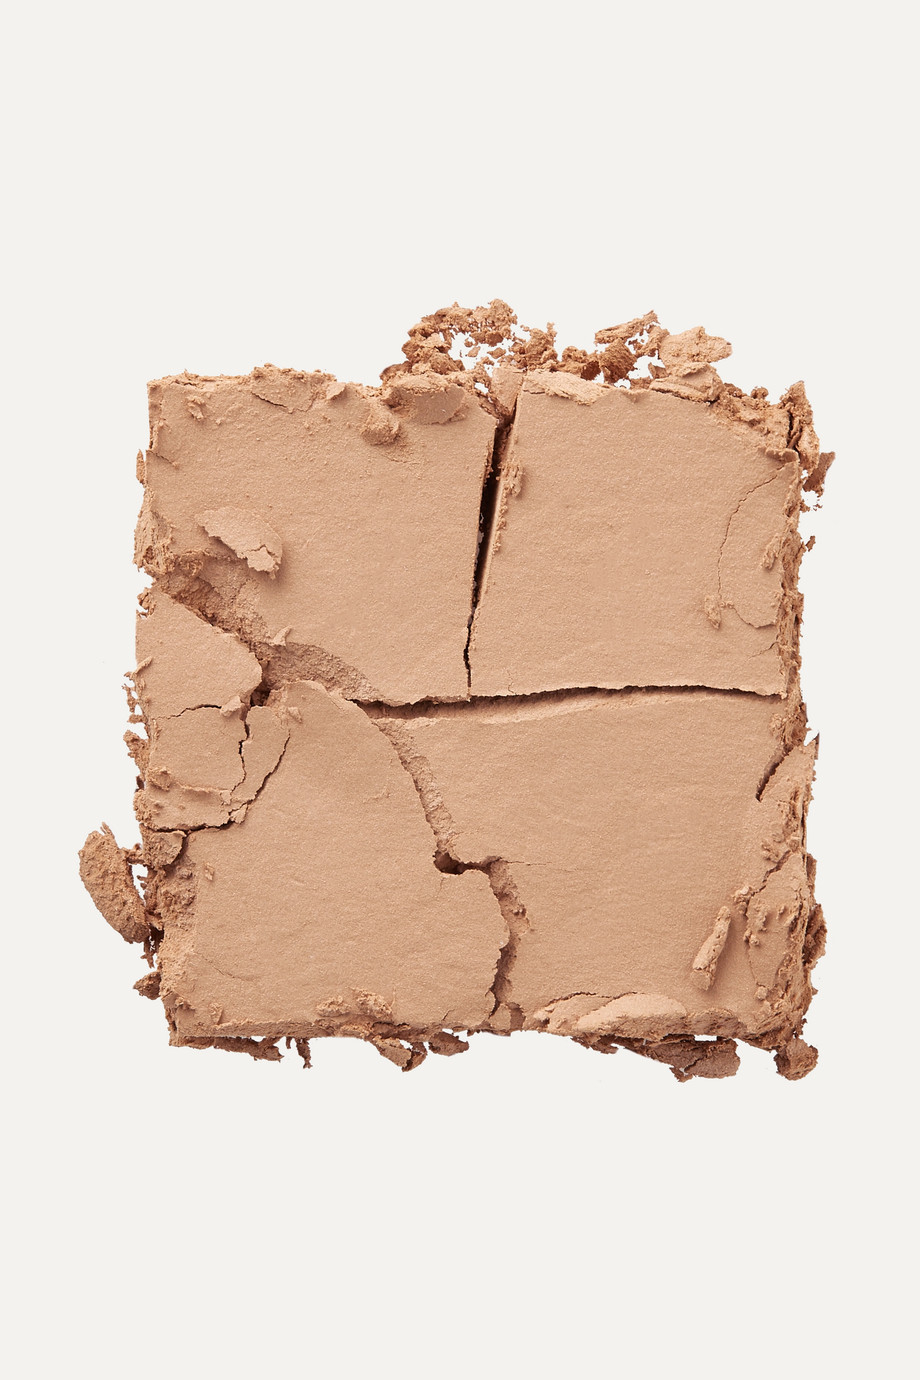 Serge Lutens Teint Si Fin Compact Foundation – I40 – Foundation